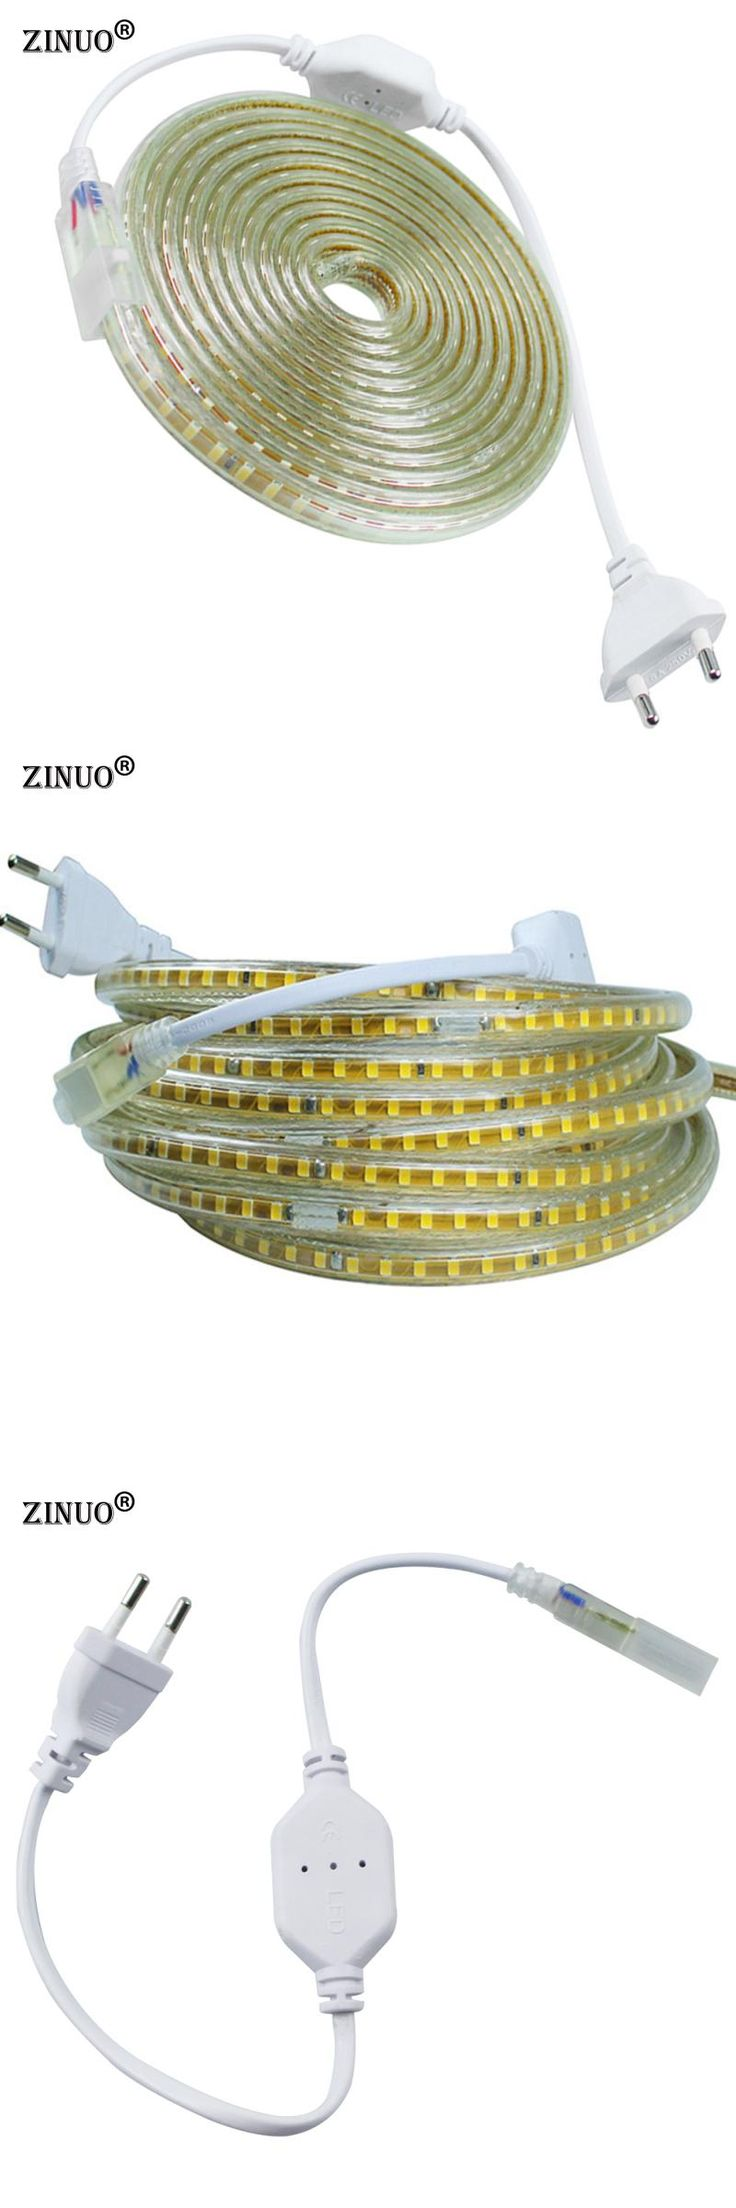 [Visit to Buy] ZINUO 220V LED Strip 2835 120Leds/M IP67 Waterproof With EU Power Plug LED Tape Light String Ribbon Brighter Than 3528 5630  #Advertisement